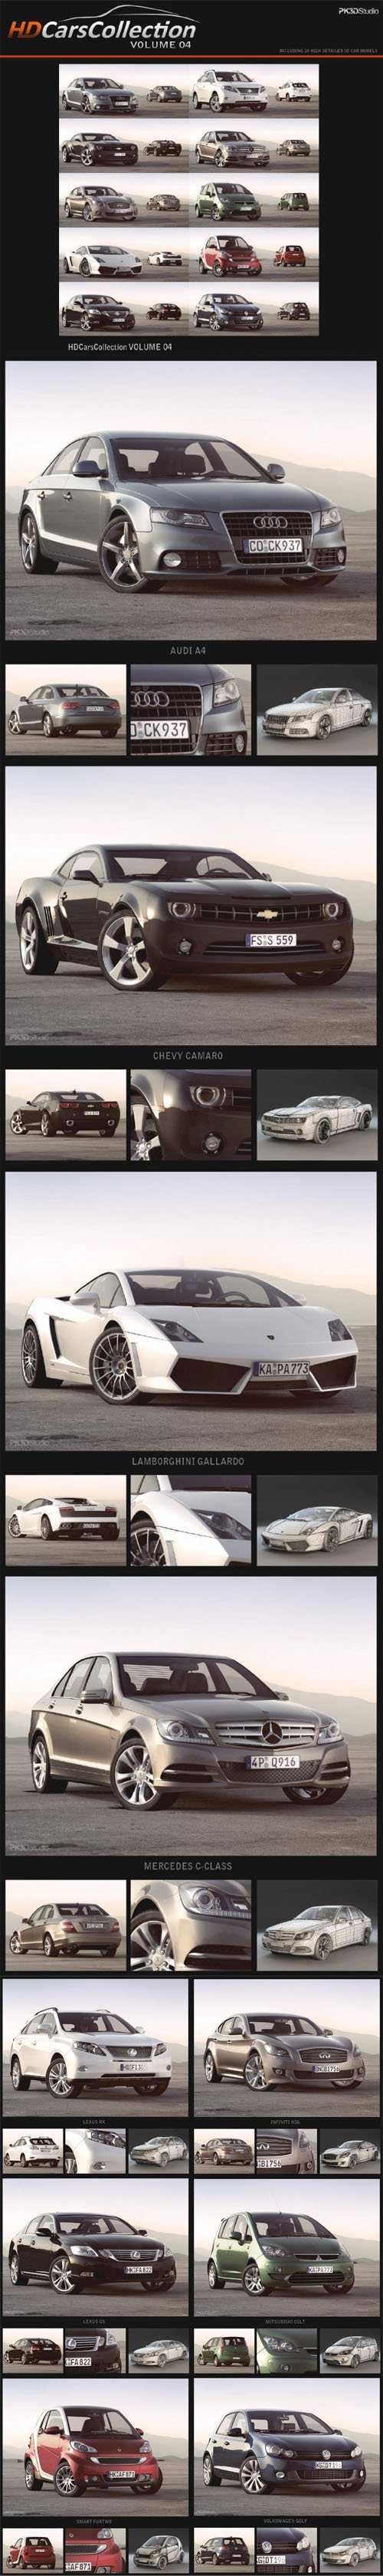 10 HD Cars Collection Vol.4